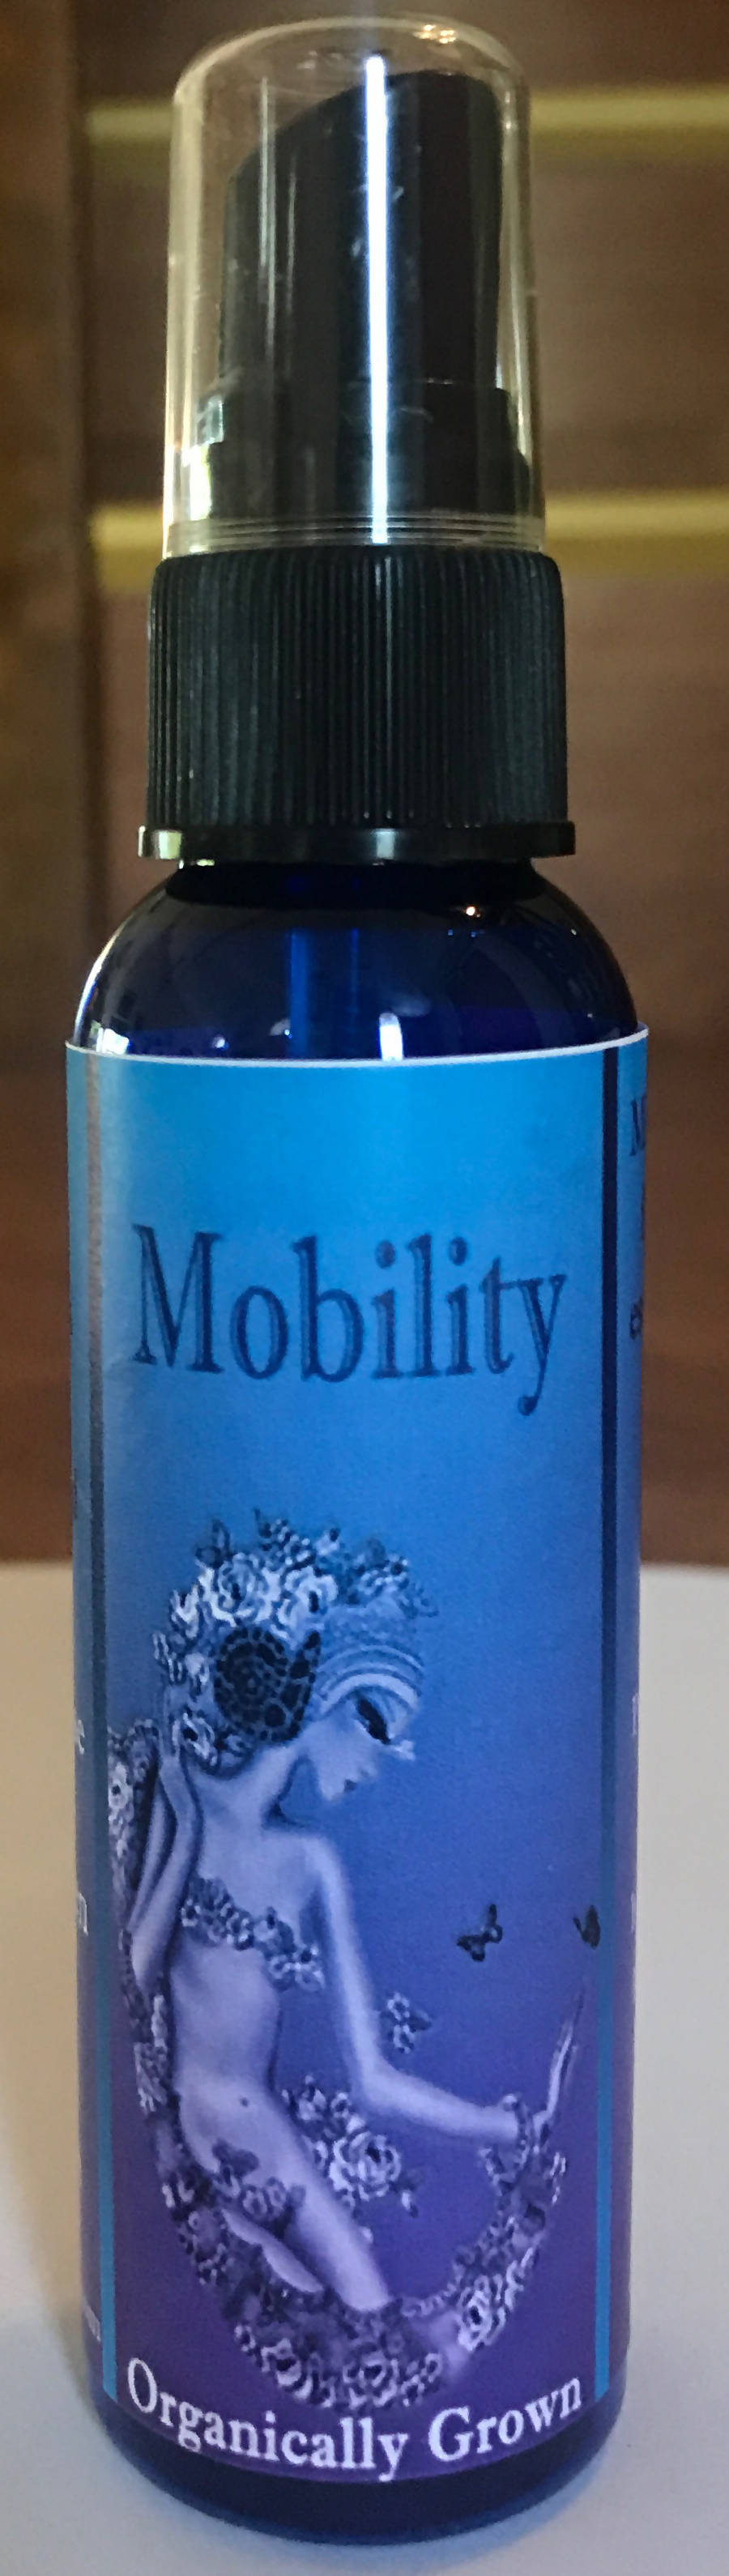 Mobility ( Orange Blossom scent) 2 oz Spray